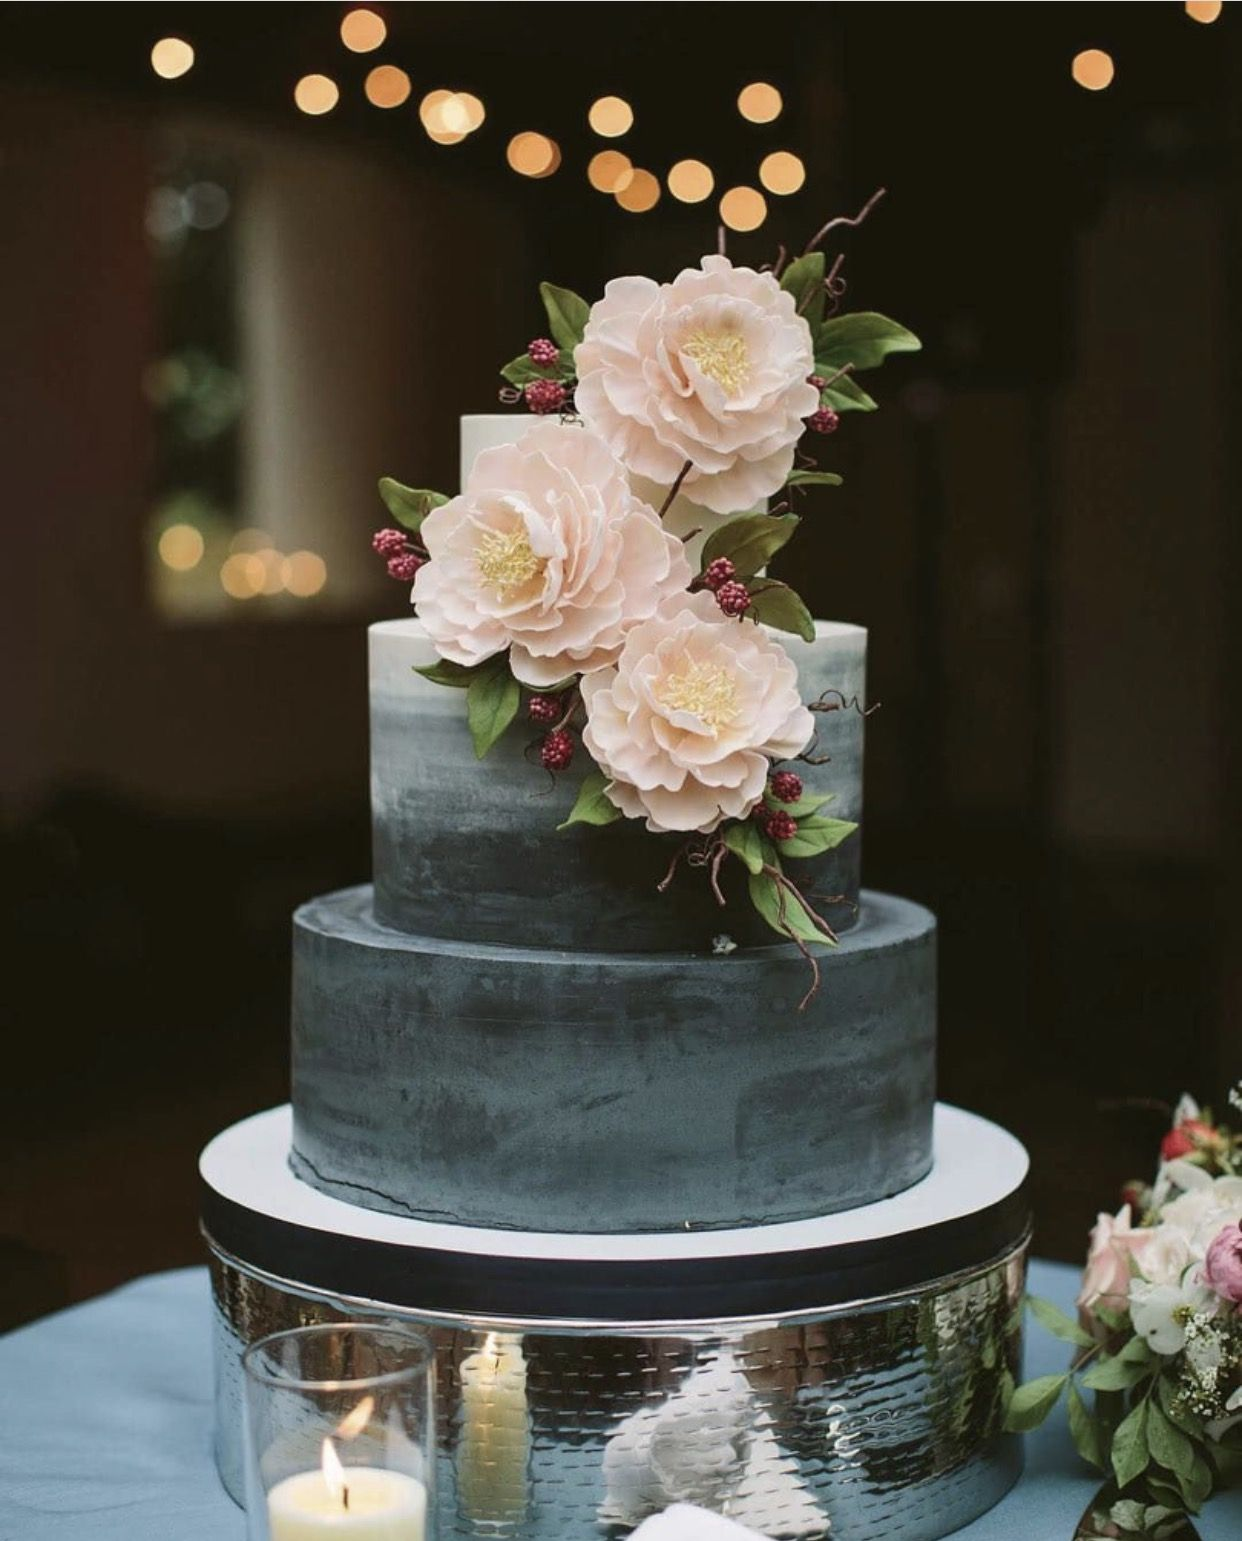 15 Elegant Fall Wedding Cakes Ideas For Cake Flavors And Design